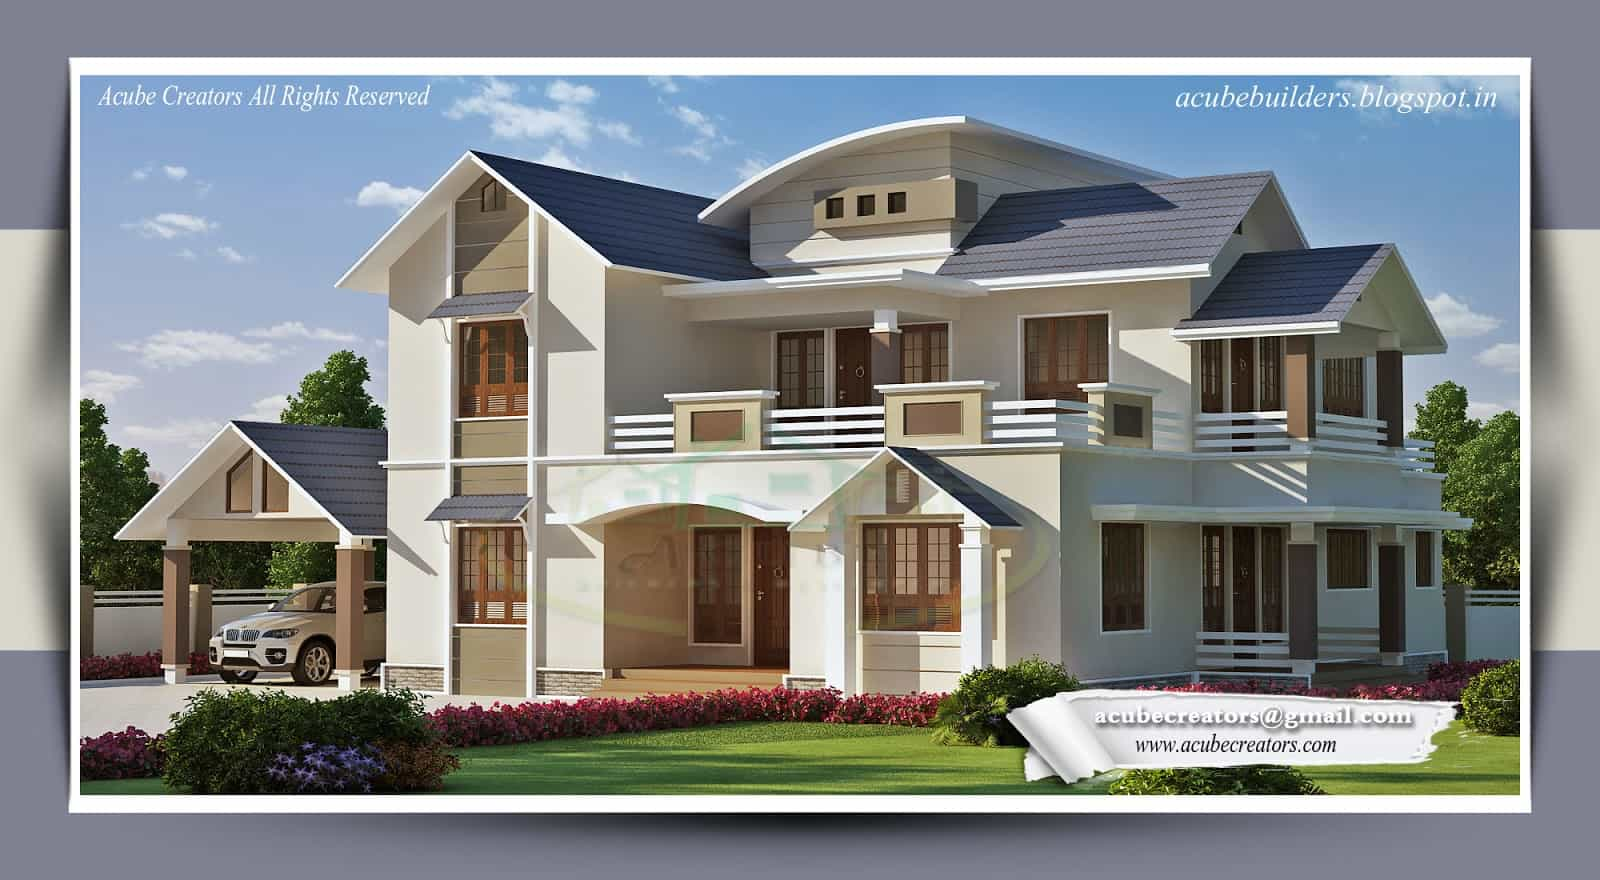 Luxurious bungalow house plans at 2988 for Bungalow home designs plans